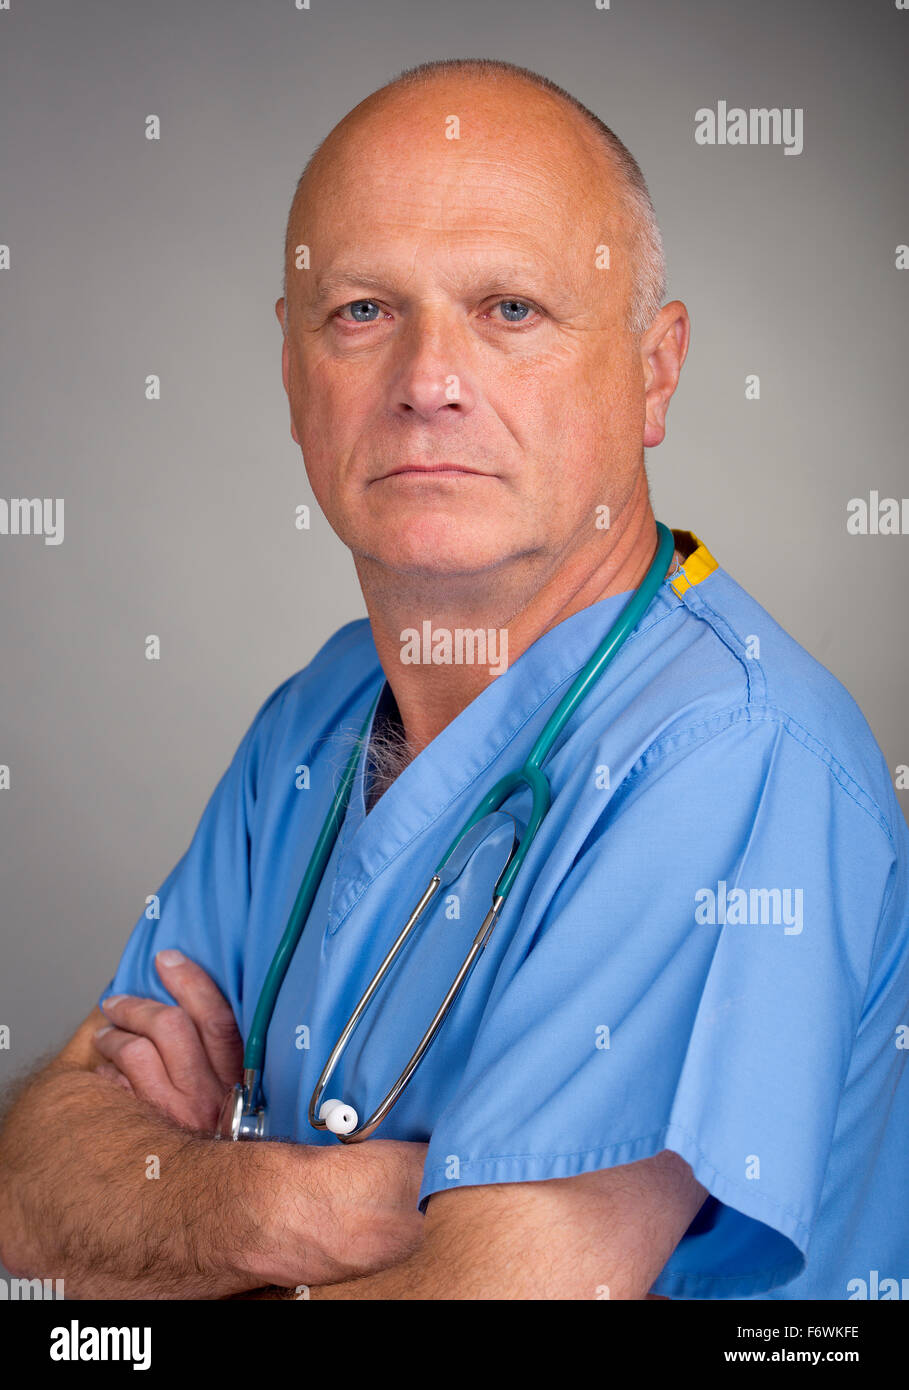 Doctor in blue scrubs, with arms folded and a stethoscope around his neck, against a grey background. - Stock Image